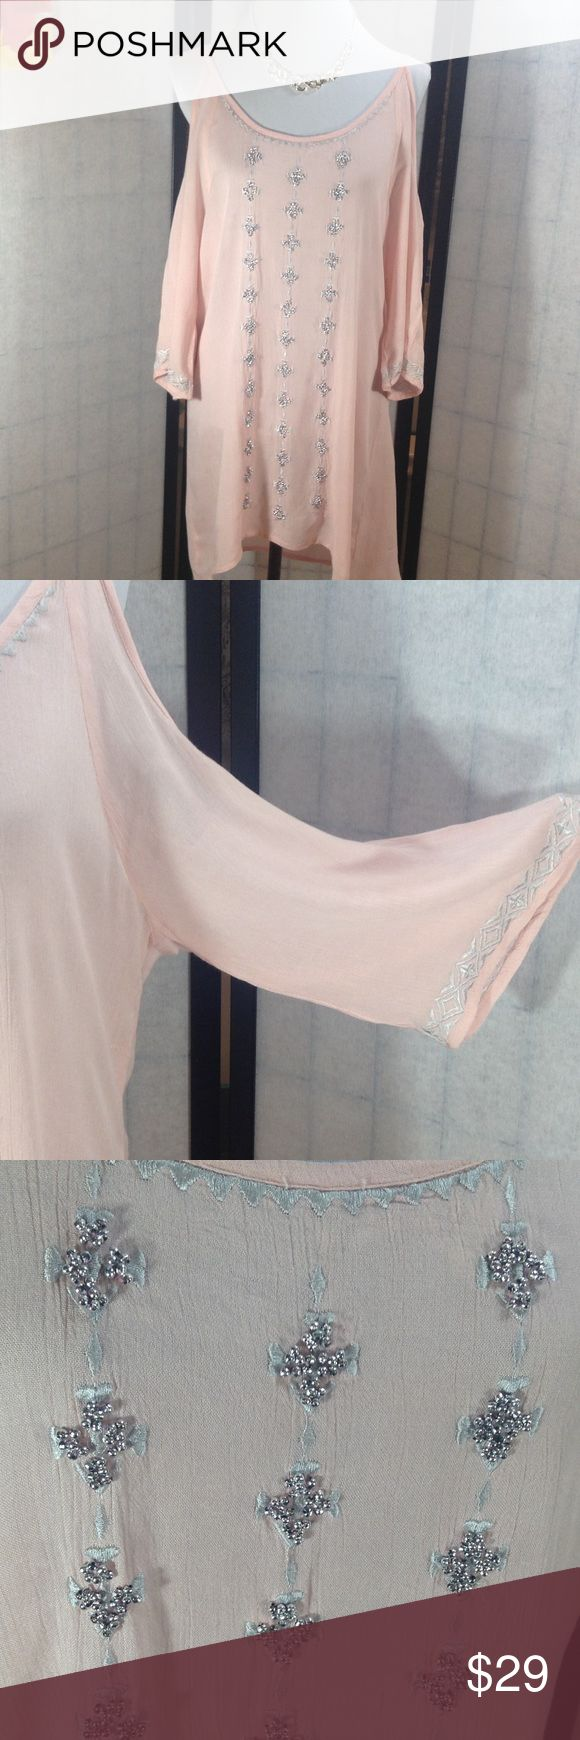 """Romeo & Juliet Couture Beach dress Color is called Blush - a pale pink - with silver beading and embroidery; so sweet and pretty; cold shoulder; 3/4 sleeves with a wide cuff; fabric is somewhat sheer - would probably need to wear something under unless very brave!; size M but runs larger; measured flat app pits 20""""; shoulder to hem 33""""; NWT (T-25) Romeo & Juliet Couture Dresses"""